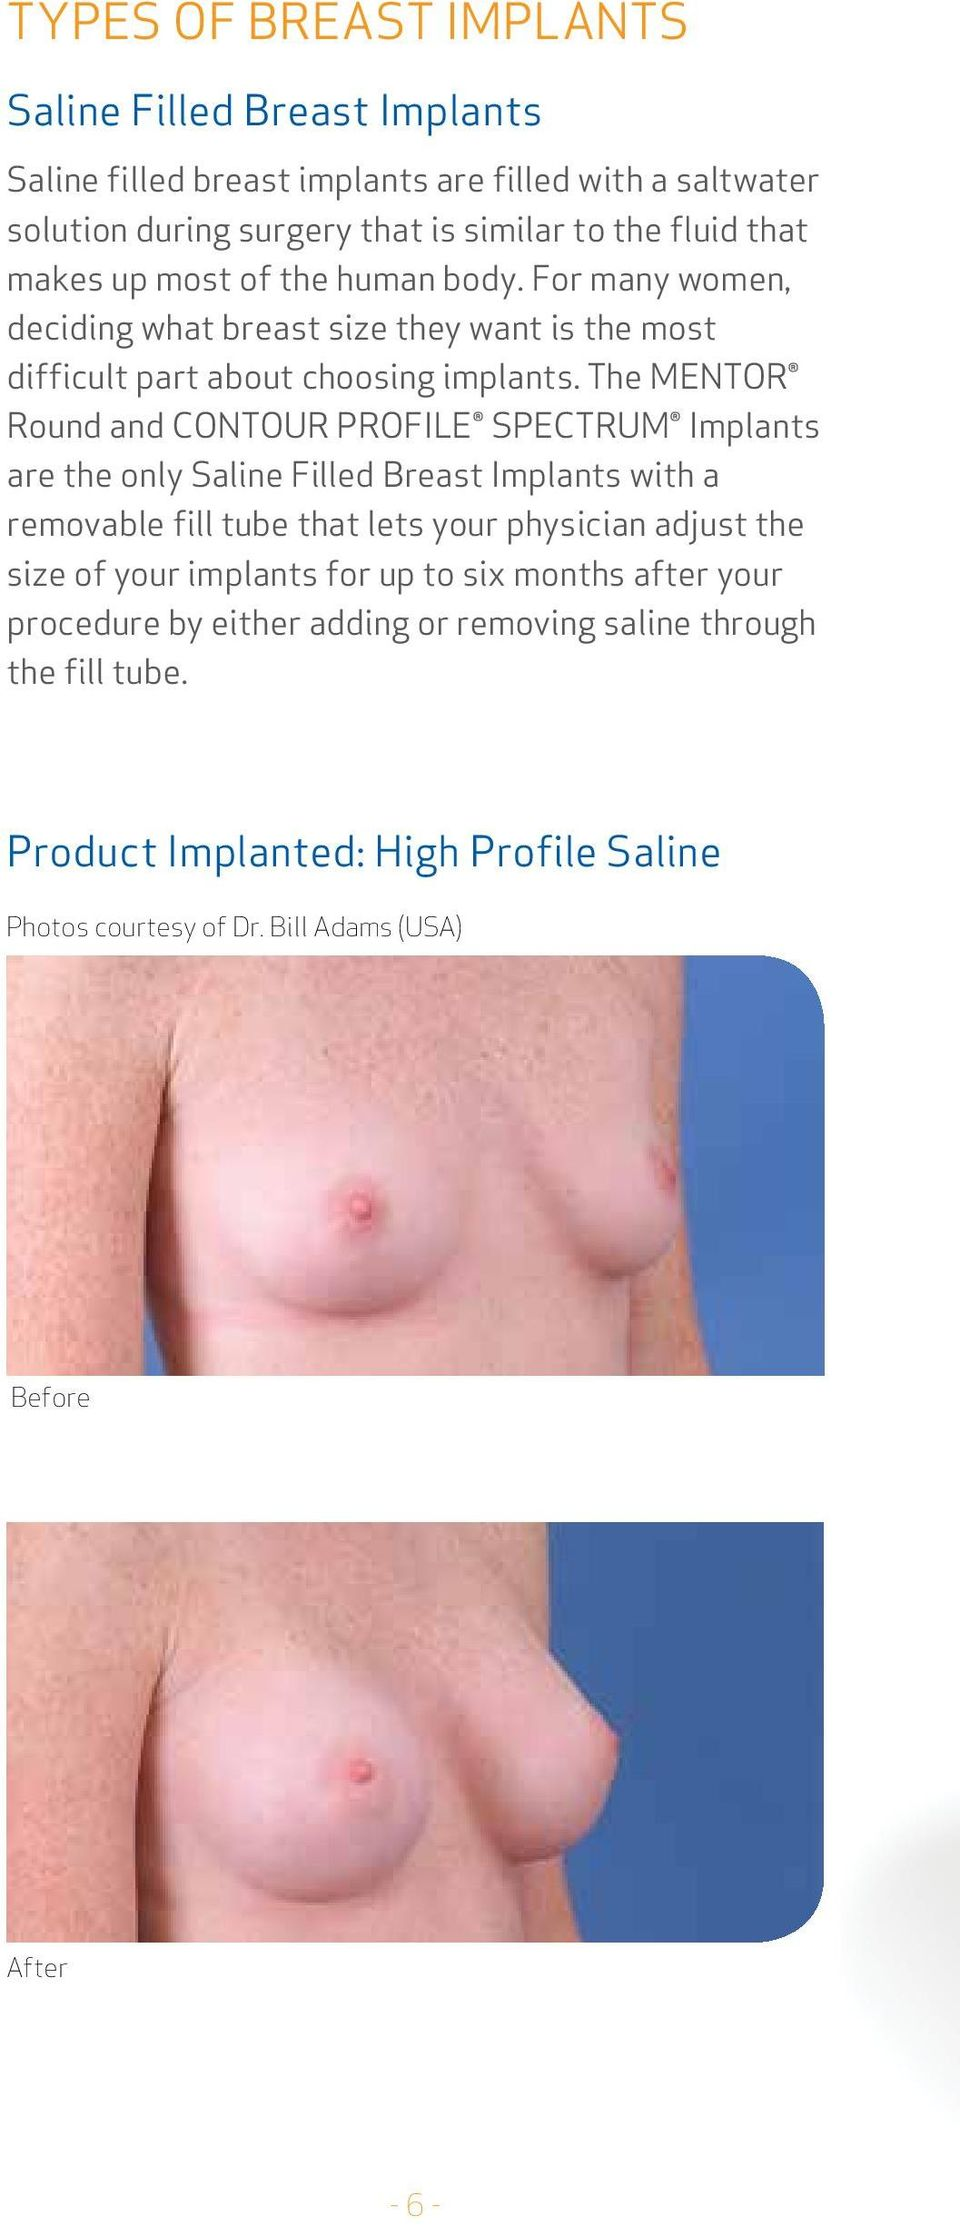 The Mentor Round and Contour Profile Spectrum Implants are the only Saline Filled Breast Implants with a removable fill tube that lets your physician adjust the size of